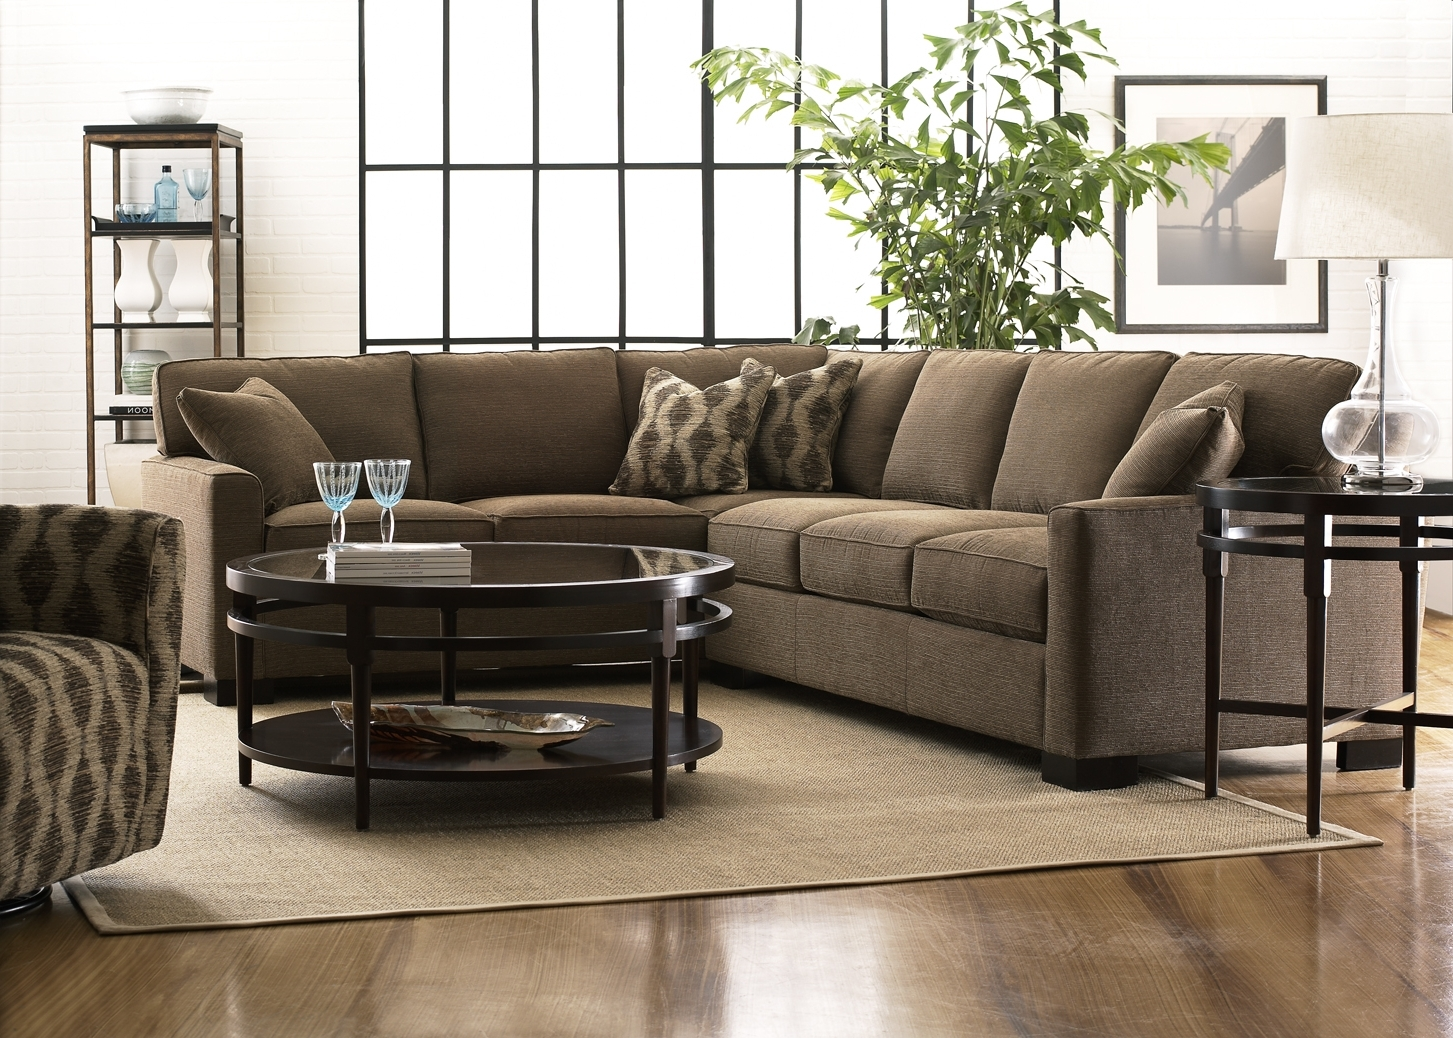 Small Room Design: Best Sofas For Small Living Rooms Sectional Pertaining To Newest Sectional Sofas For Small Living Rooms (View 5 of 15)